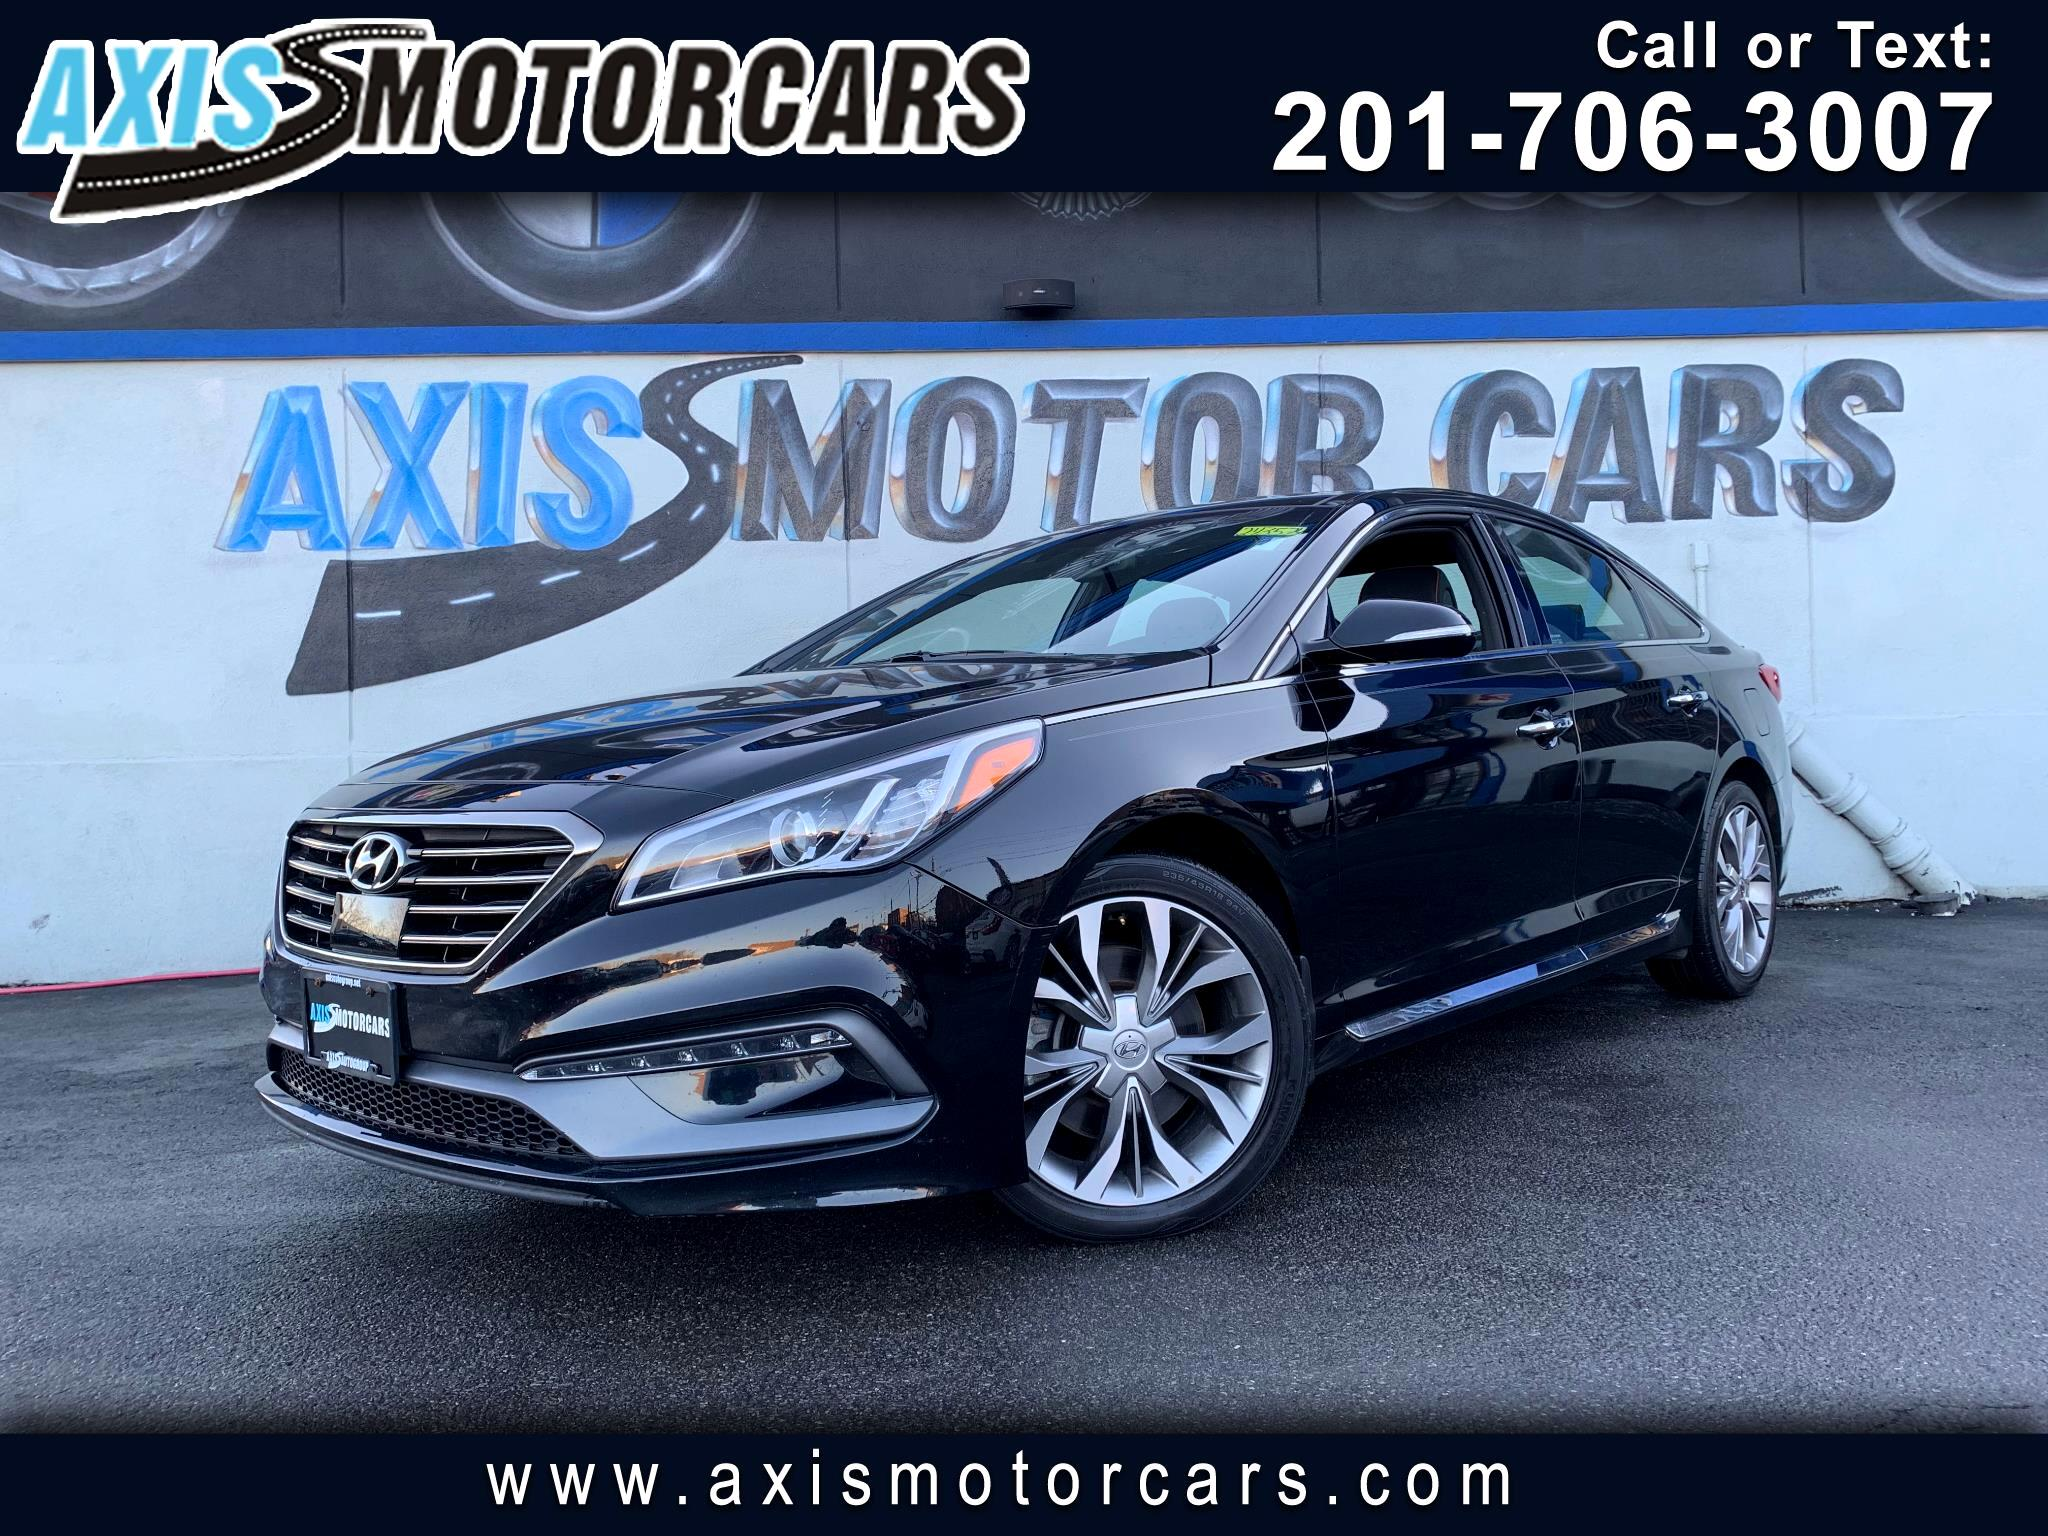 2015 Hyundai Sonata Limited w/Navigation Bakup Camera Panoramic Roof